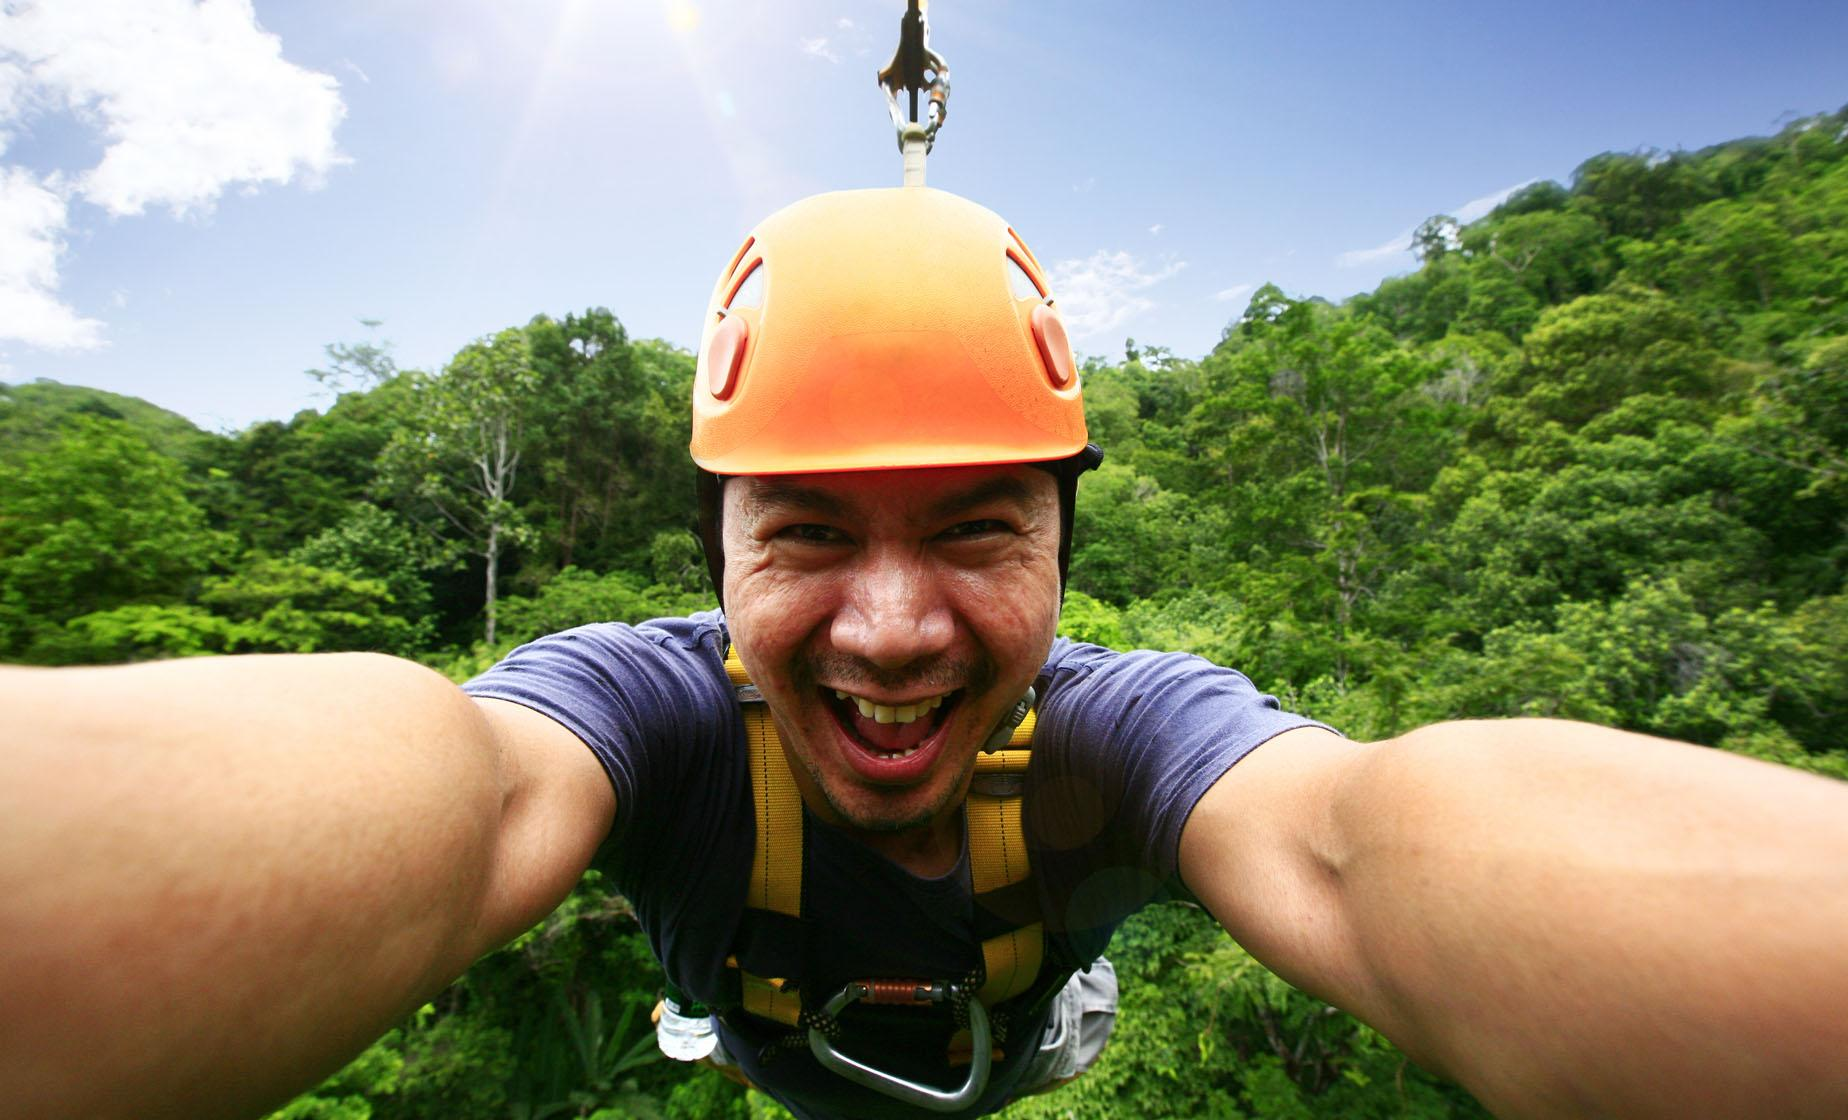 Countryside Zip Line Adventure